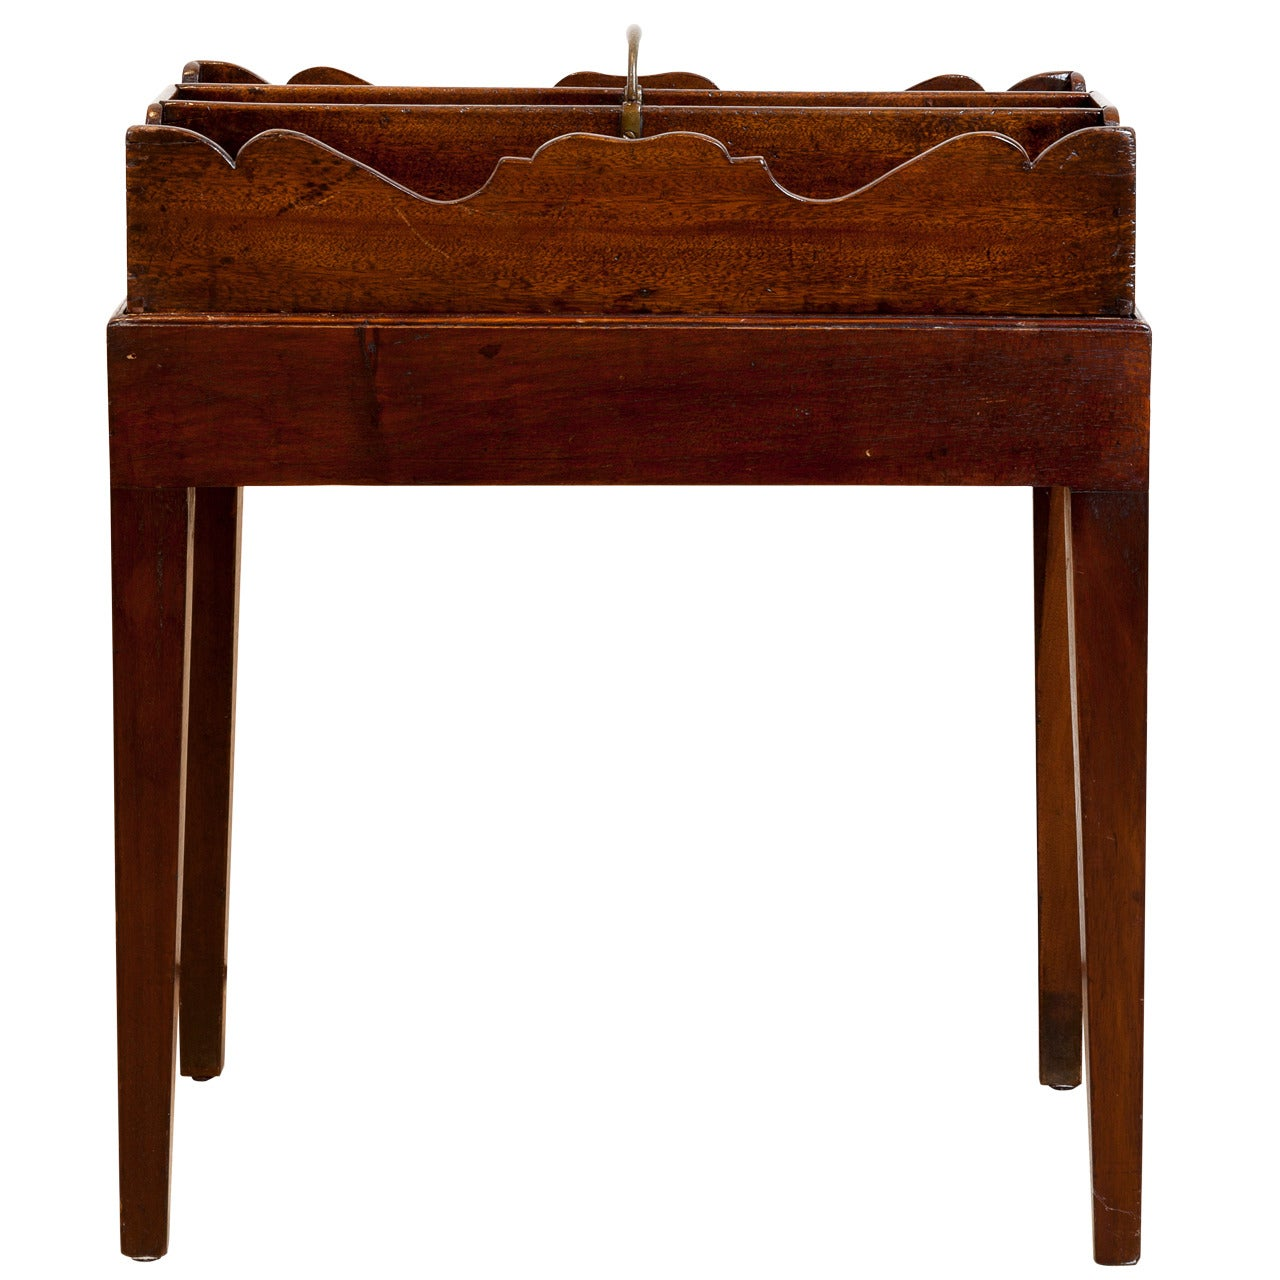 19th Century English Mahogany Cutlery Tray on Stand